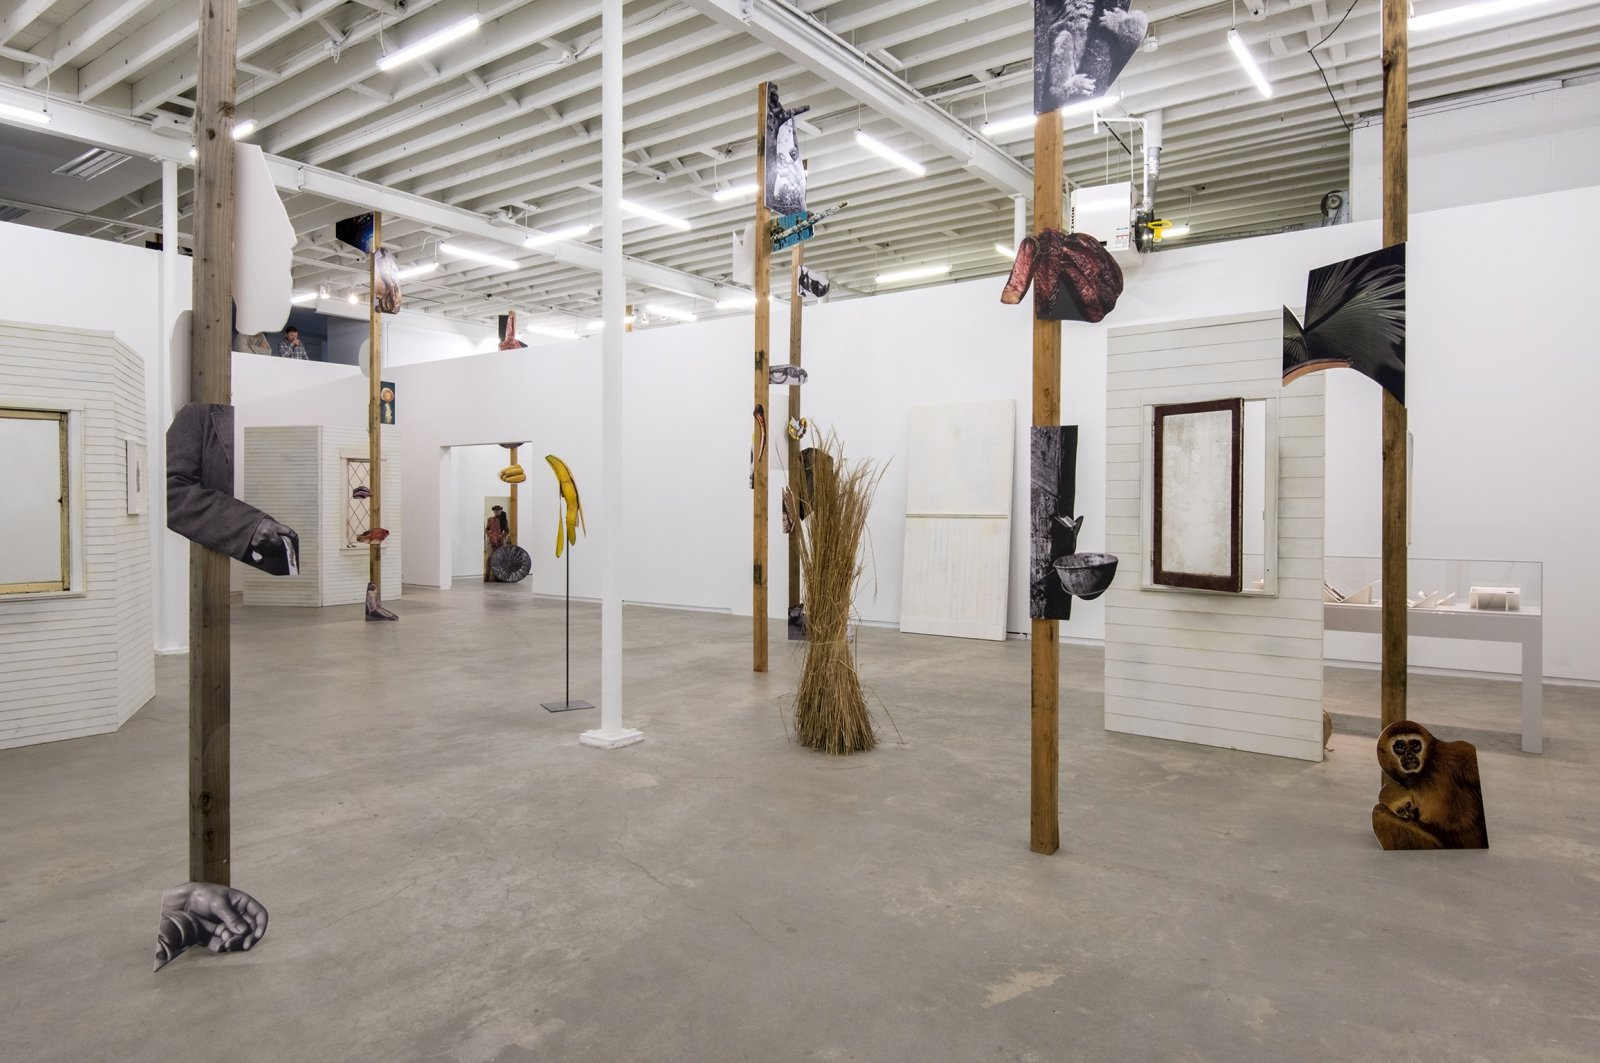 Geoffrey Farmer, installation view, The Grass and the Banana go for a walk, Catriona Jeffries, 2014 by Geoffrey Farmer